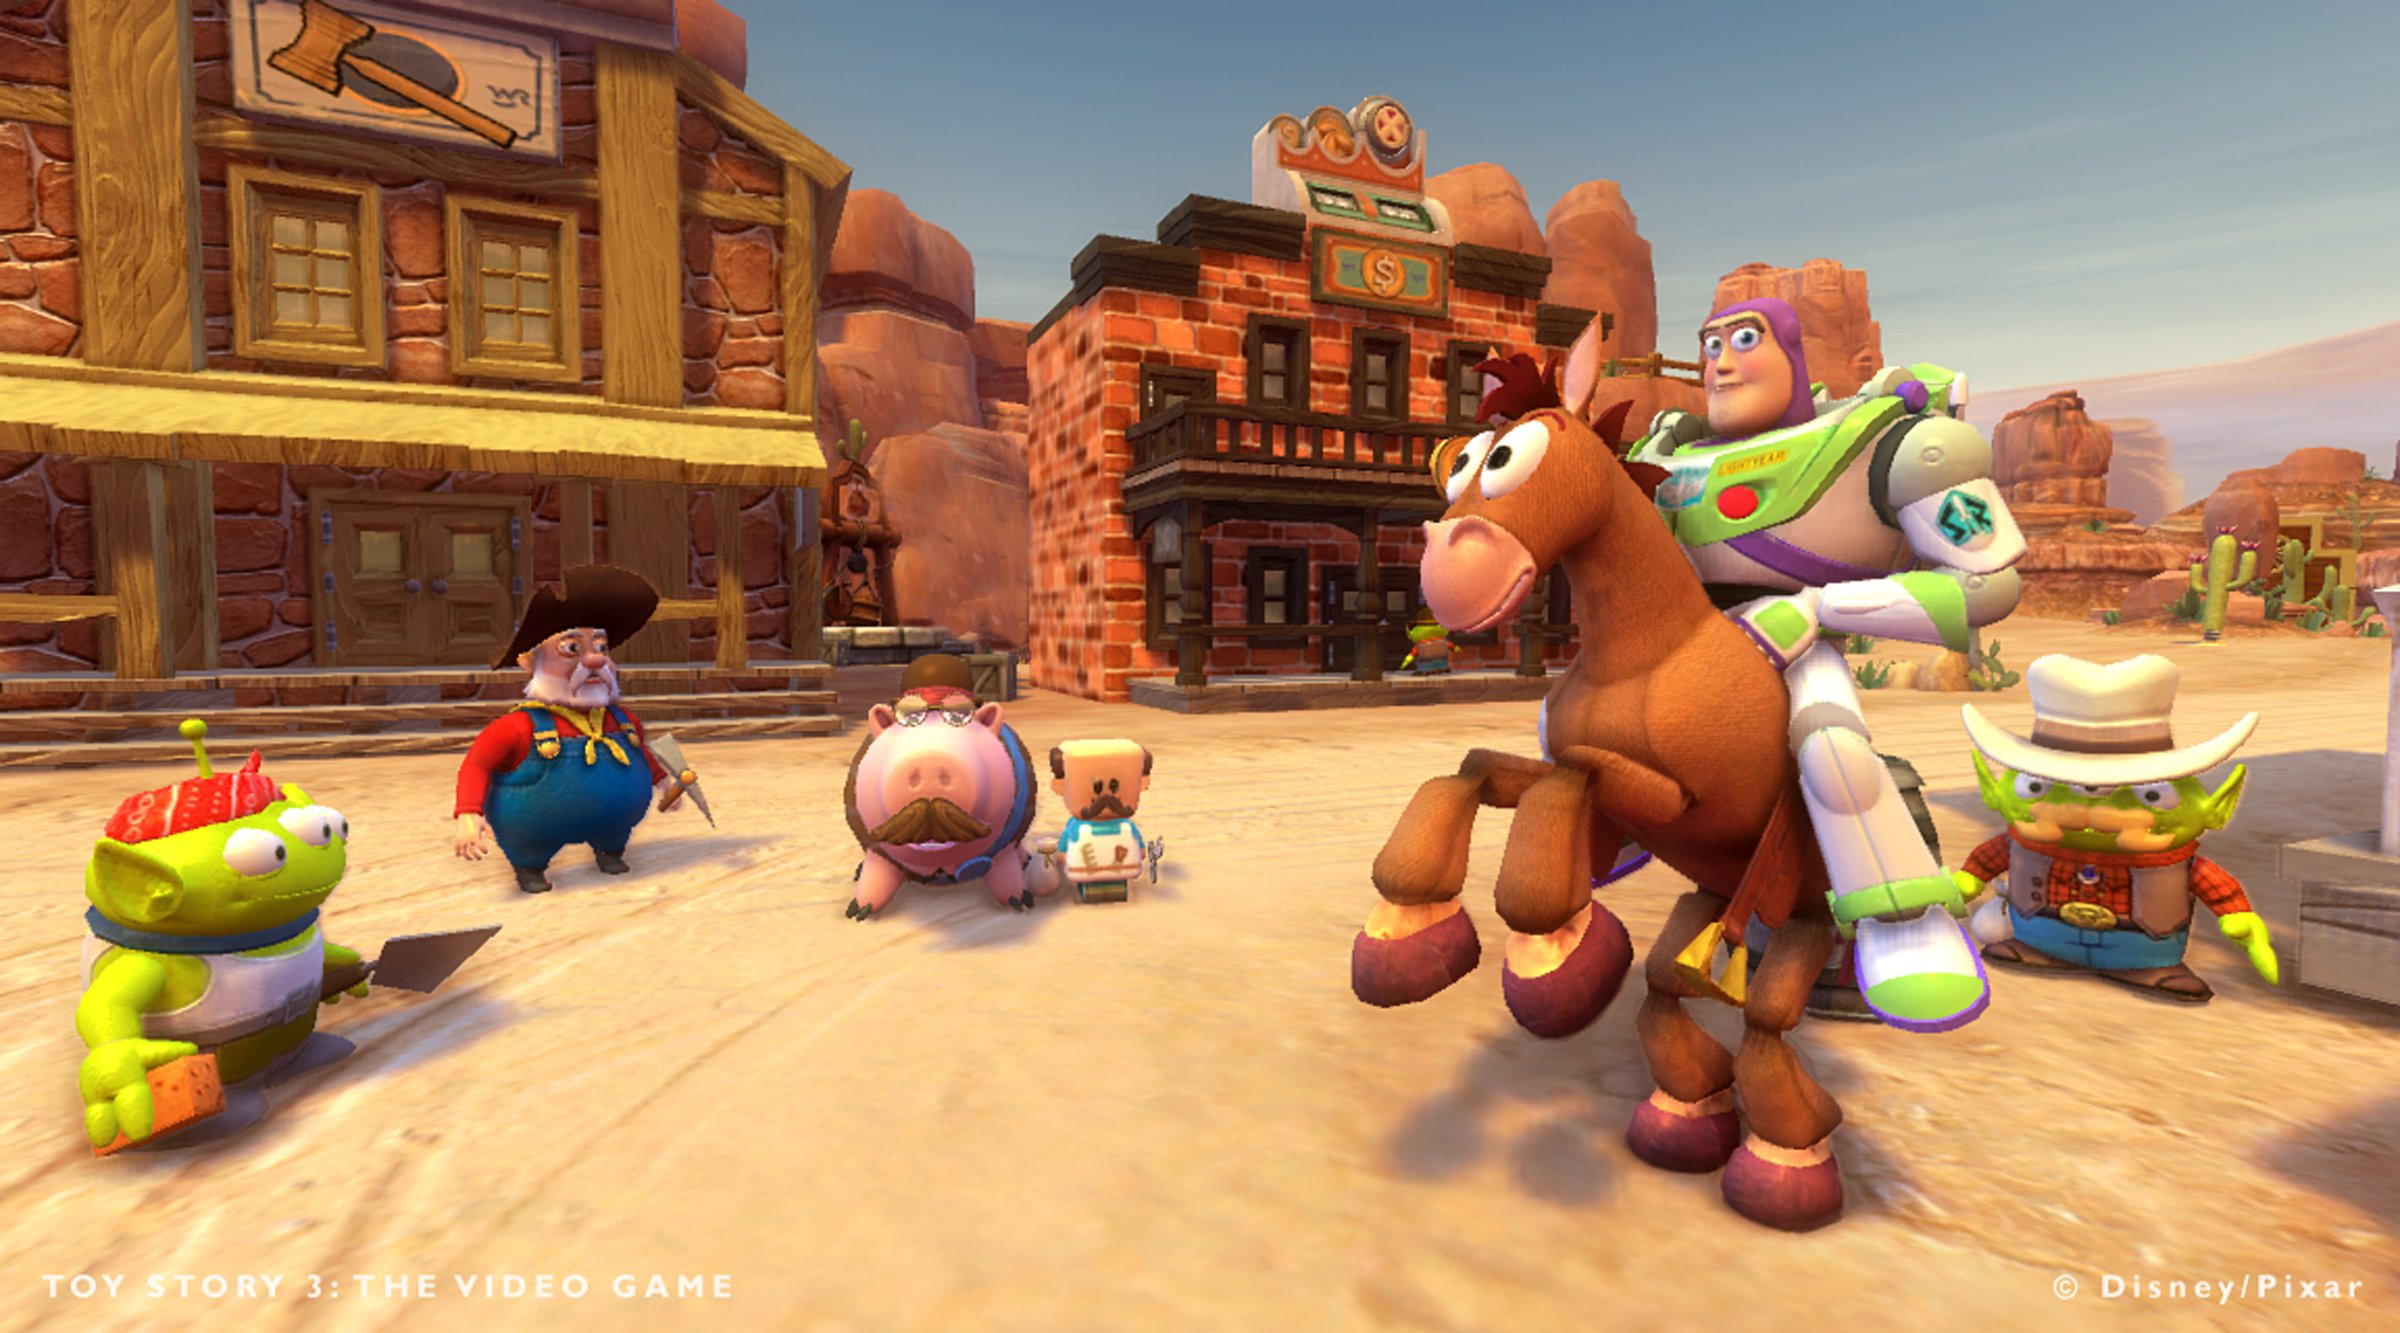 Woody Toy Story 3 Games : Toy story the video game free download pc full version